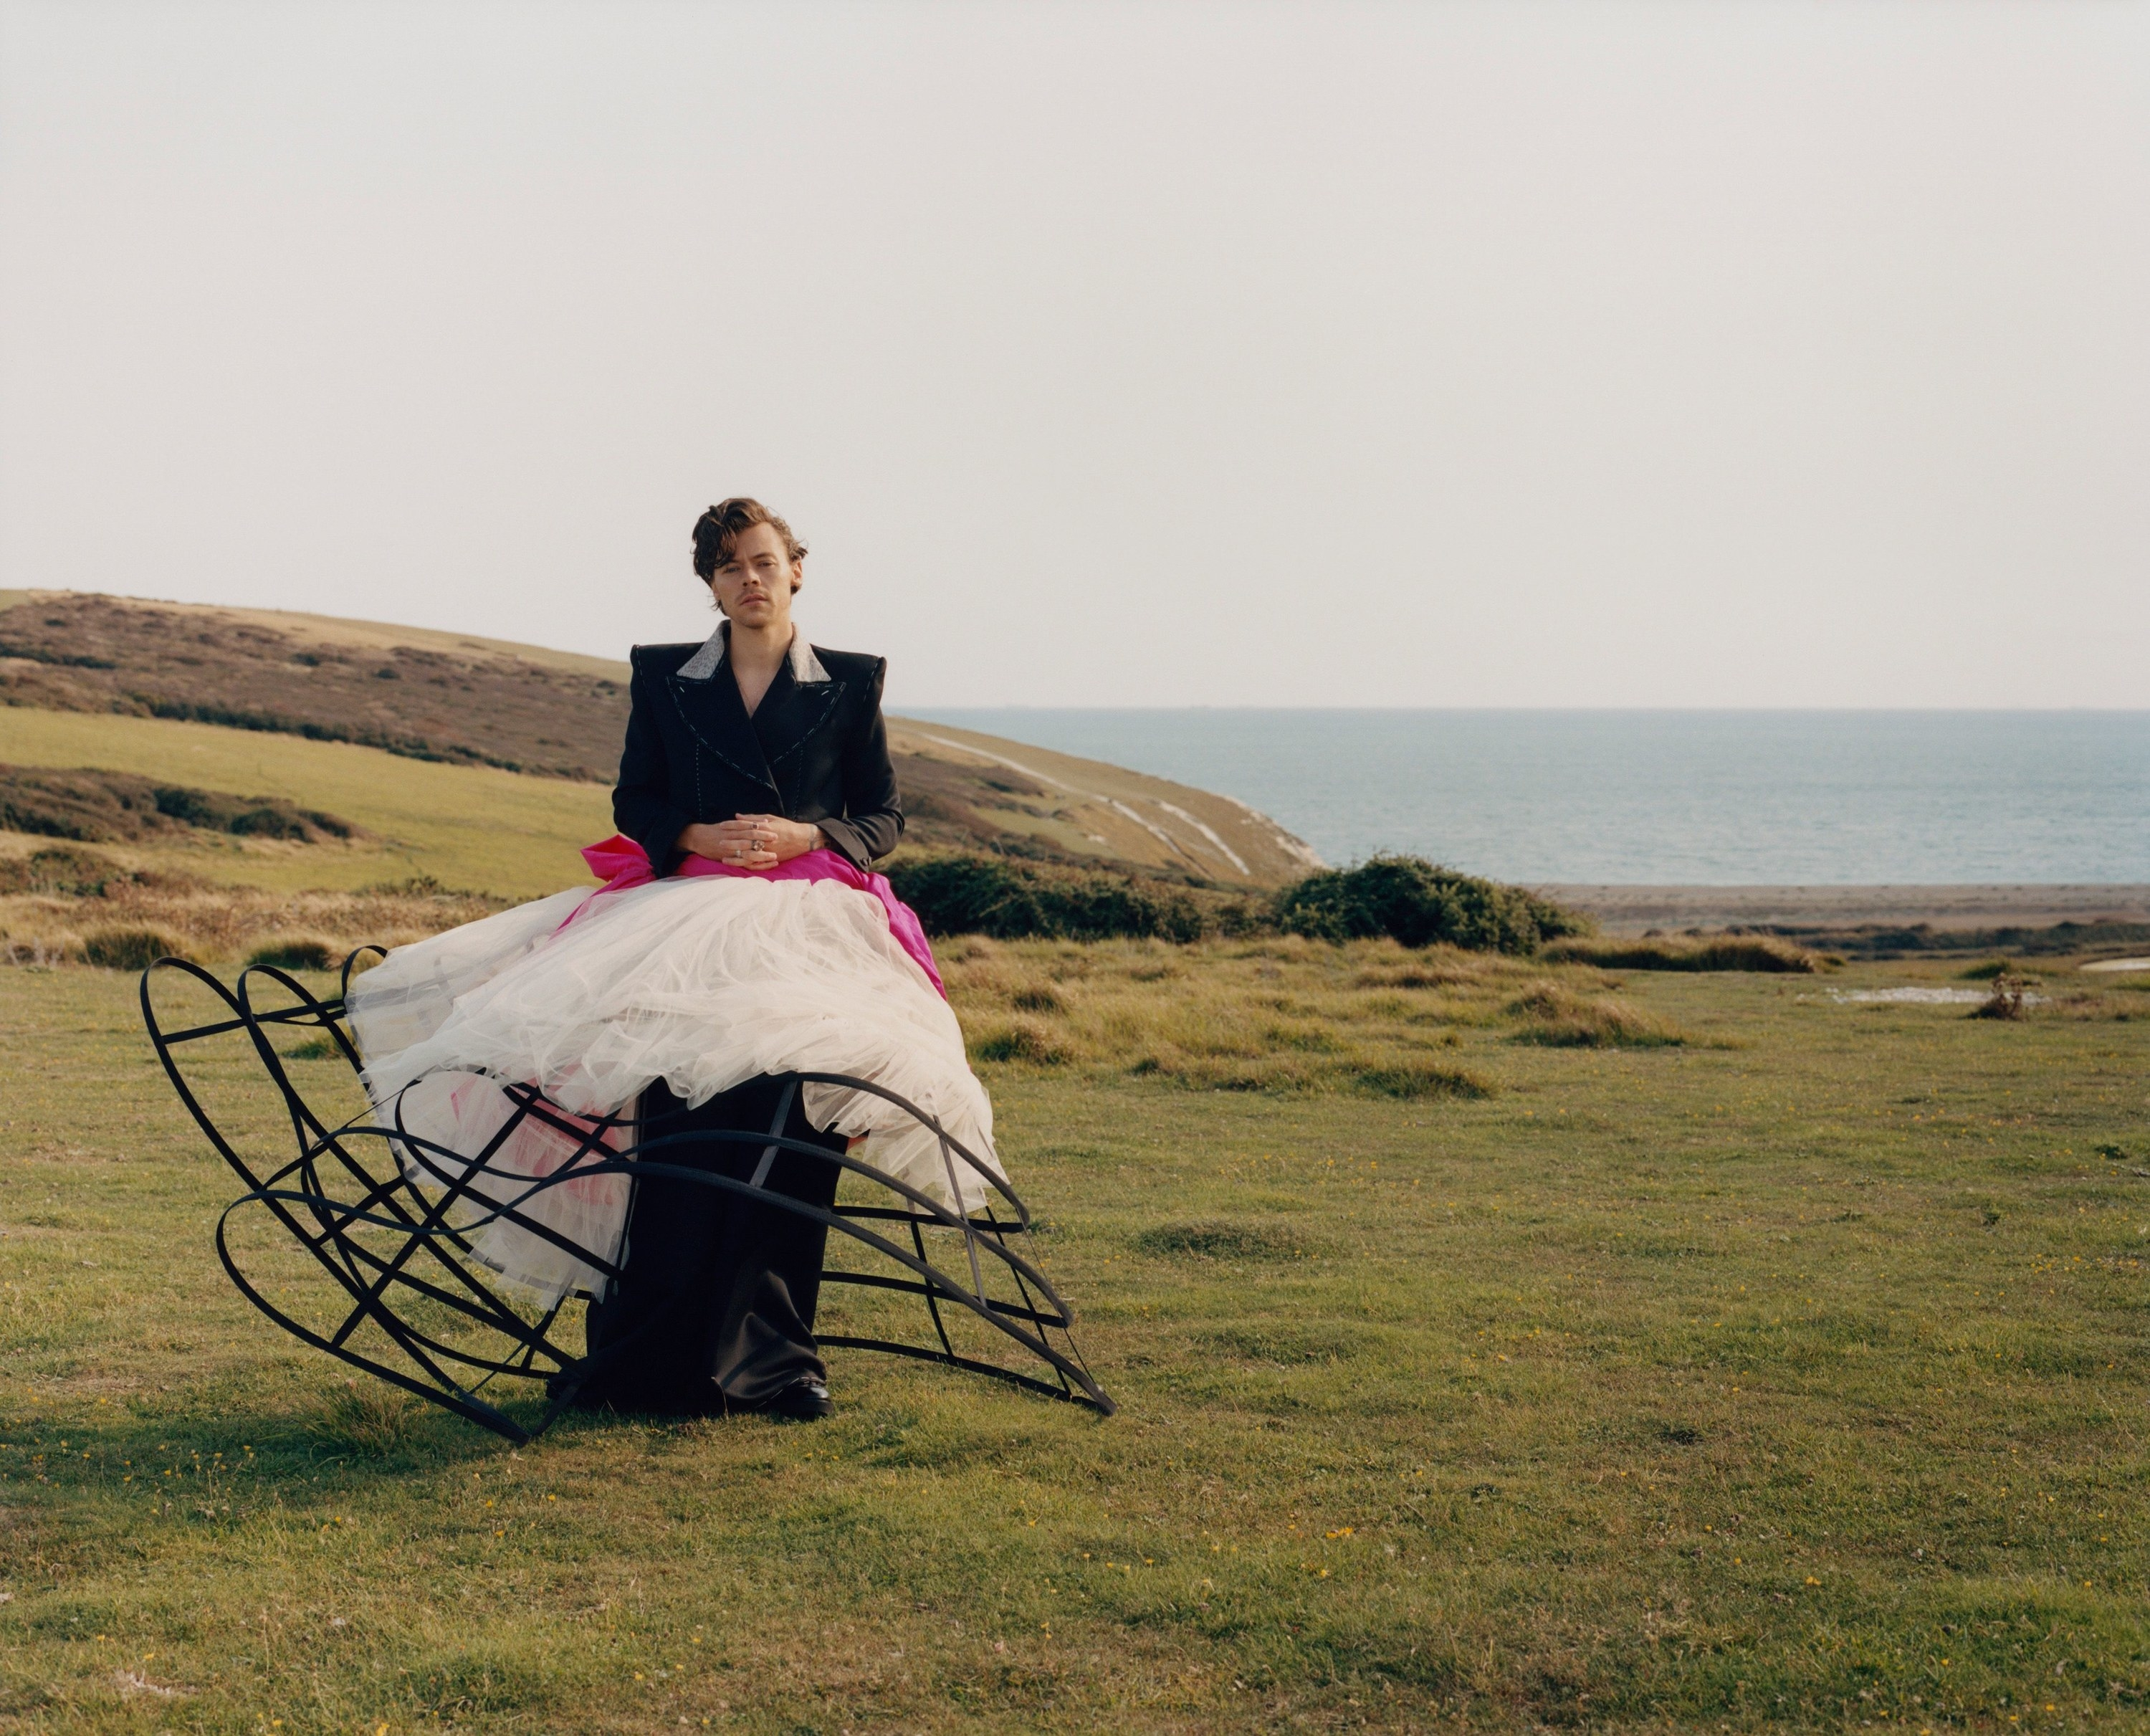 Harry dressed in a full suit, tulle skirt, and a crinoline